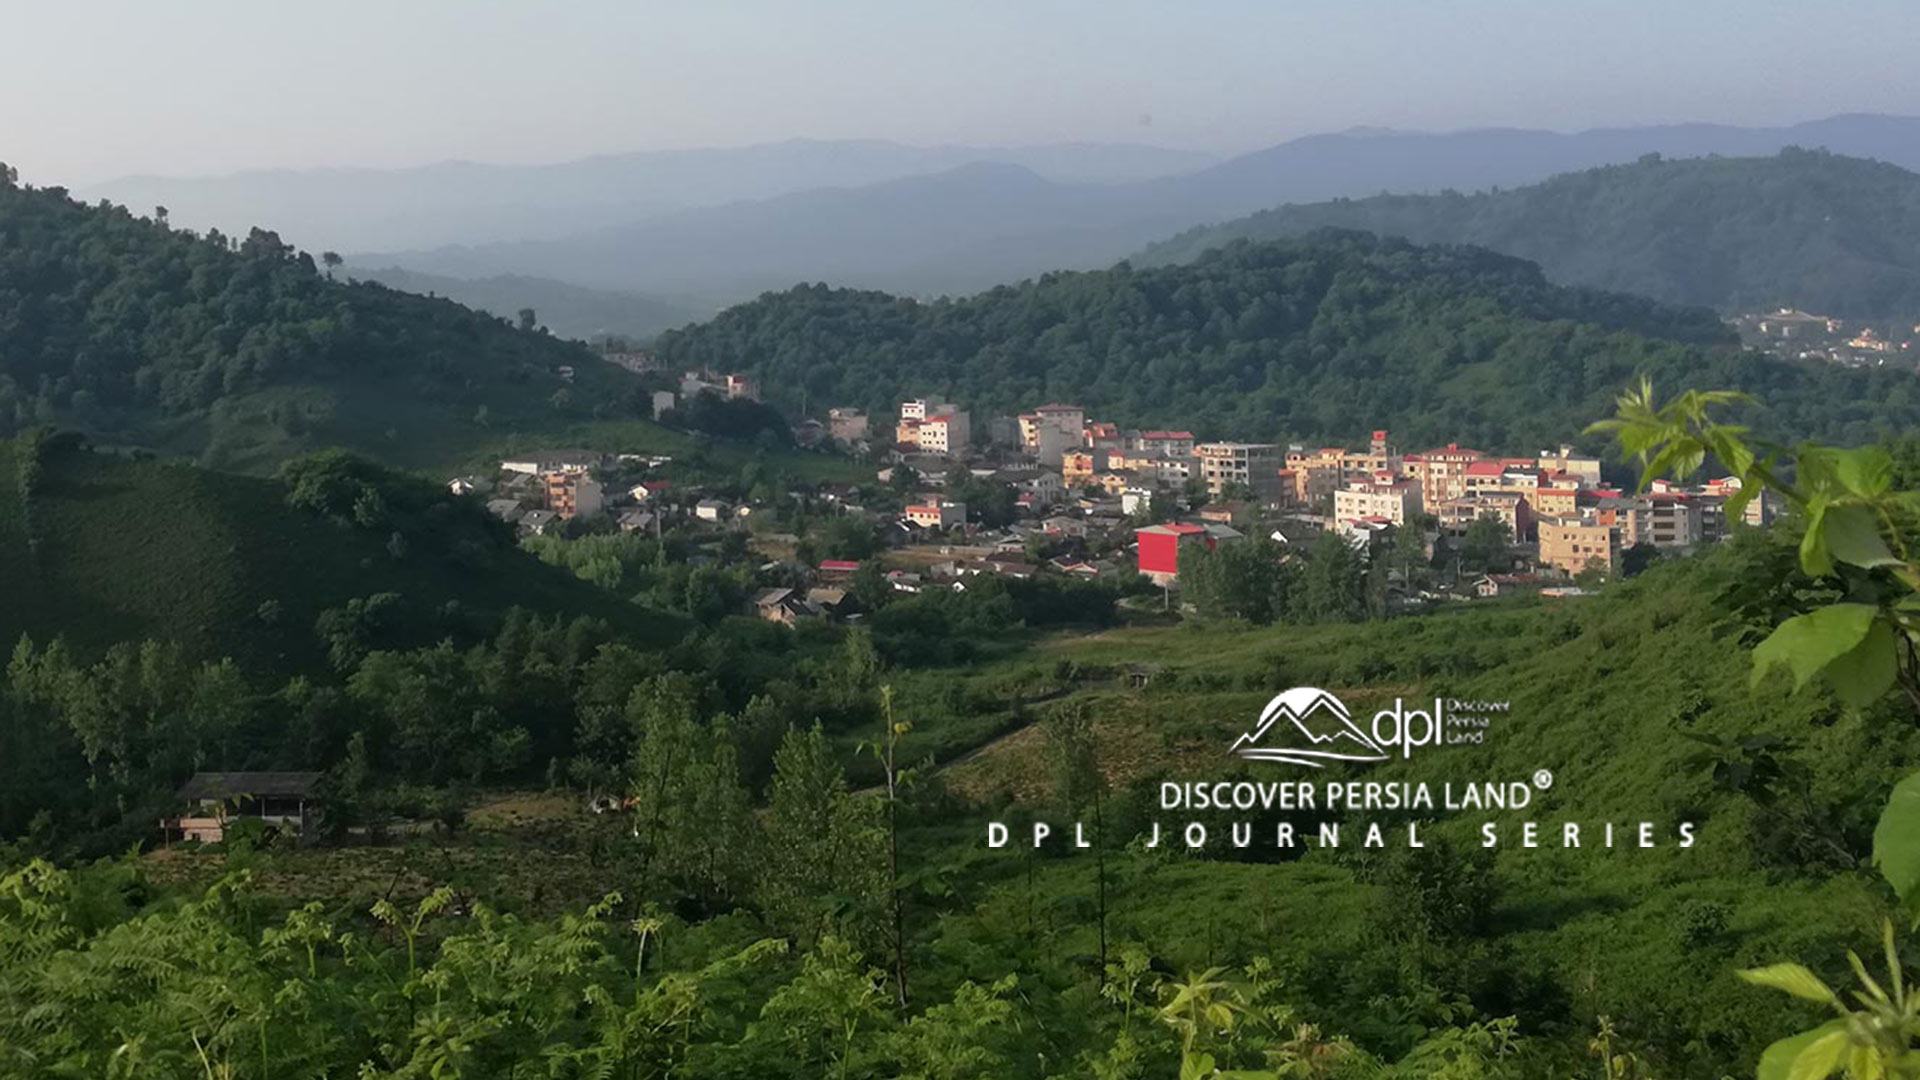 Take a look at the natural and historical attractions of Gilan